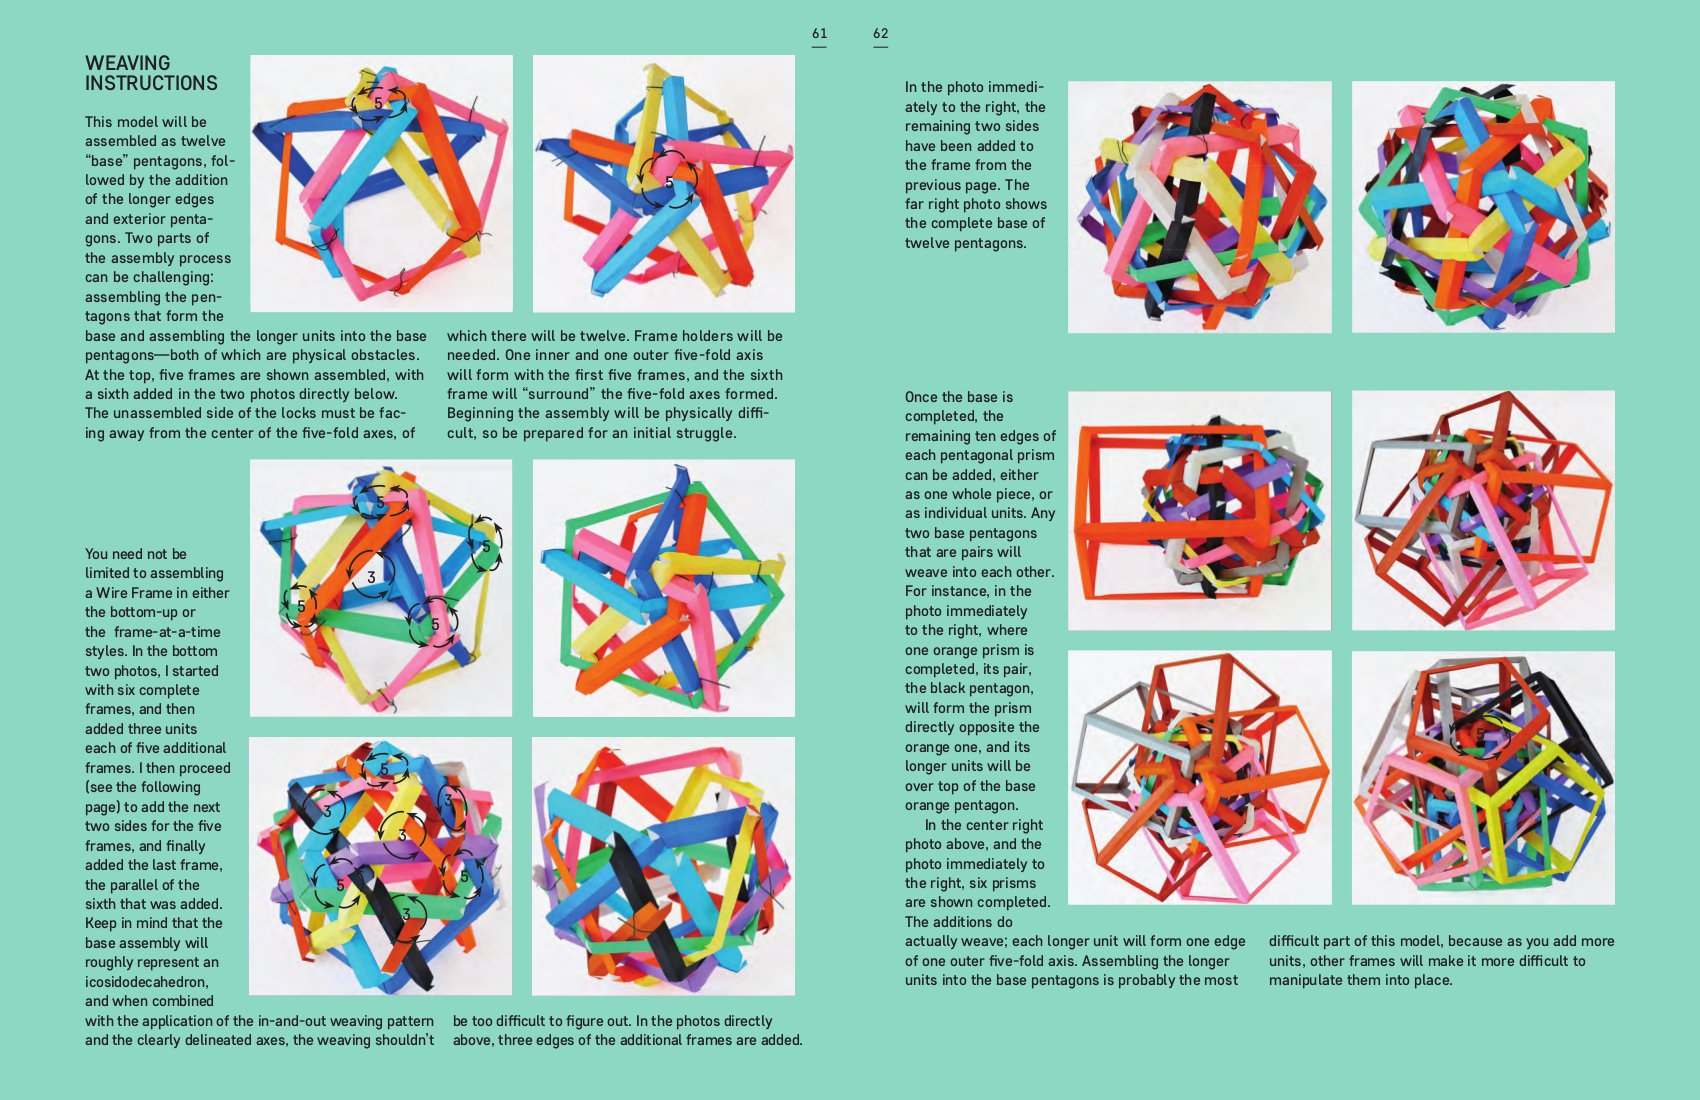 Mind blowing modular origami the art of polyhedral paper folding mind blowing modular origami the art of polyhedral paper folding use origami math to fold complex innovative geometric origami models byriah loper thecheapjerseys Image collections